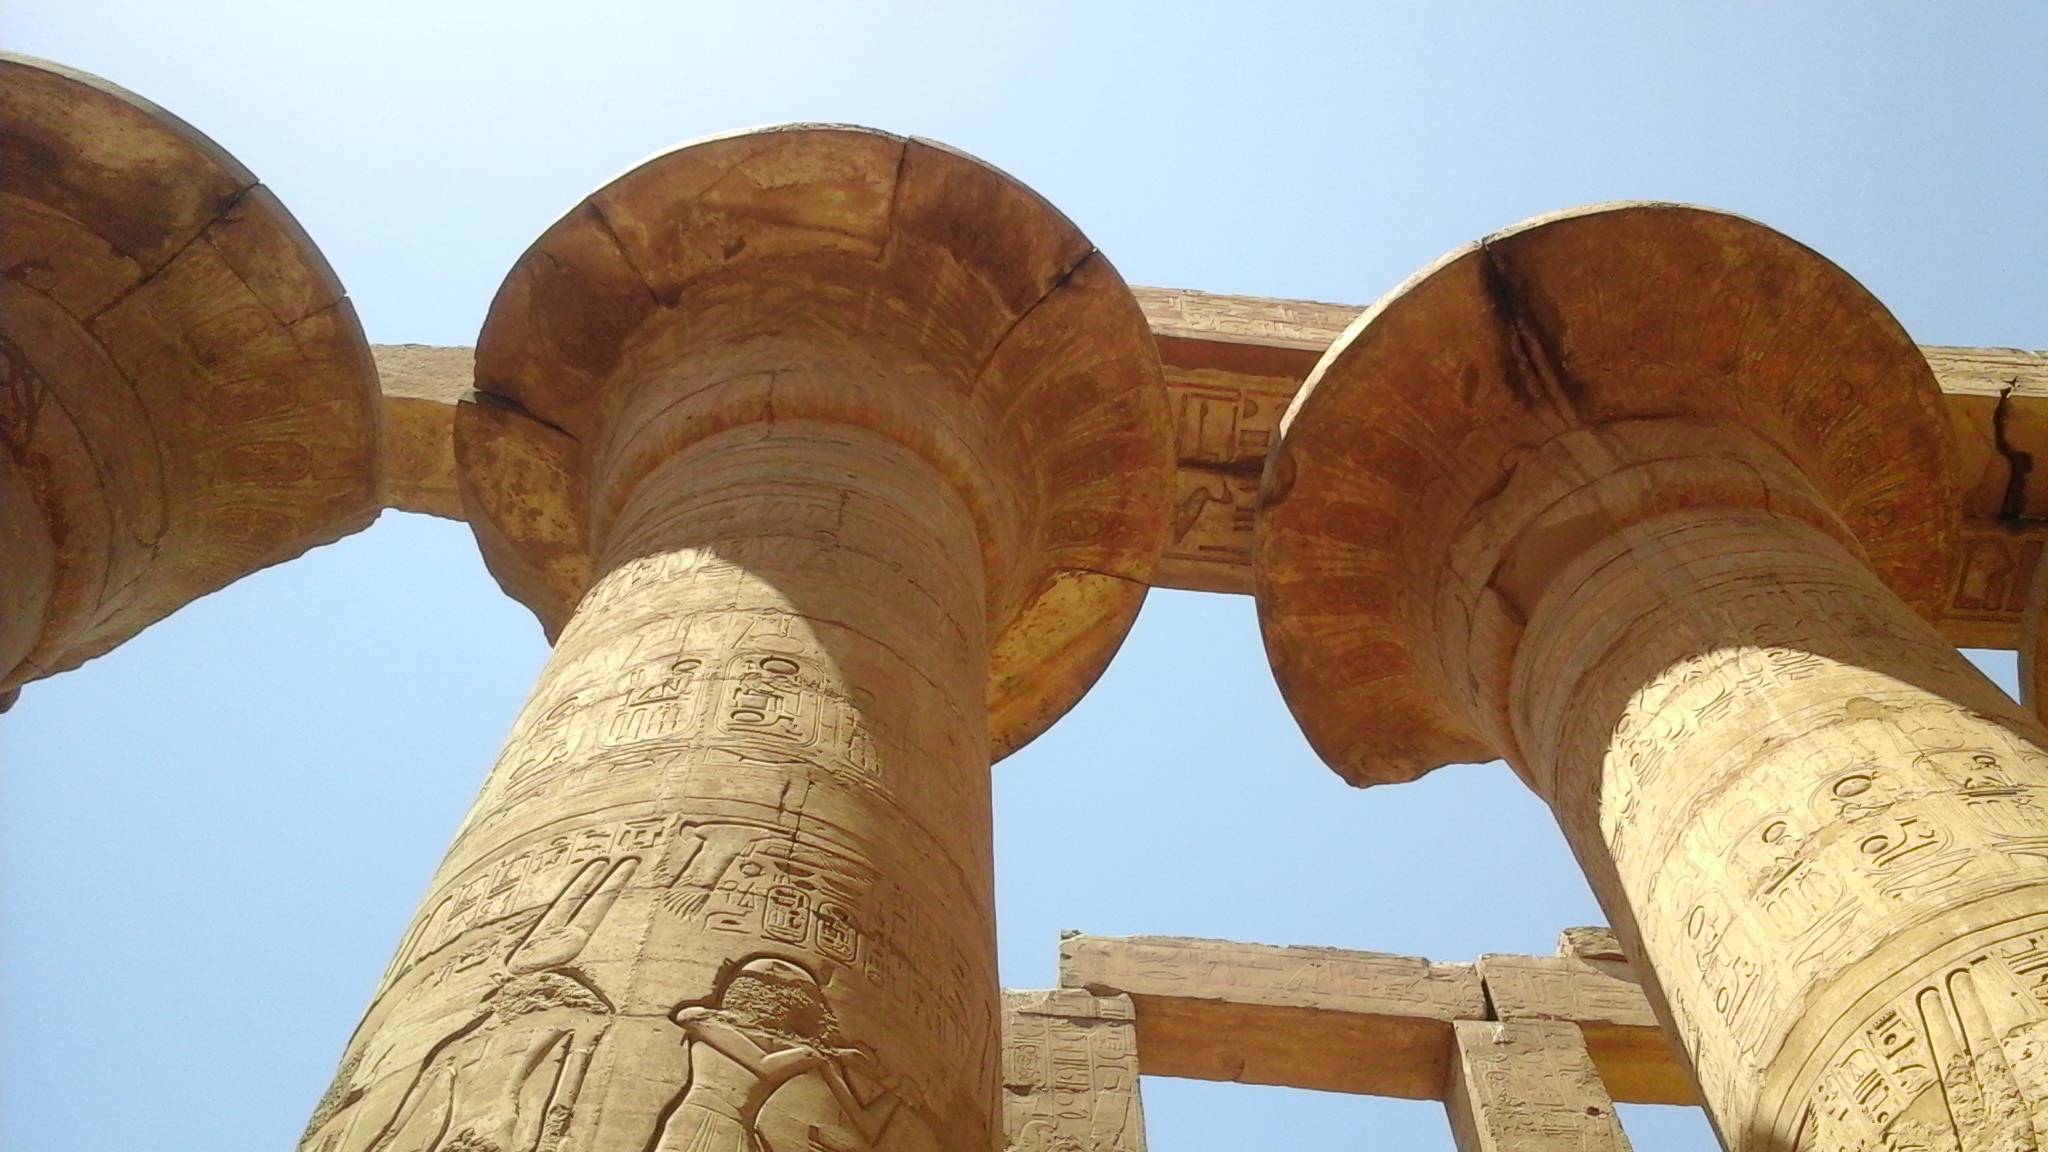 The Great Hypostyle hall in the temple of Karnak